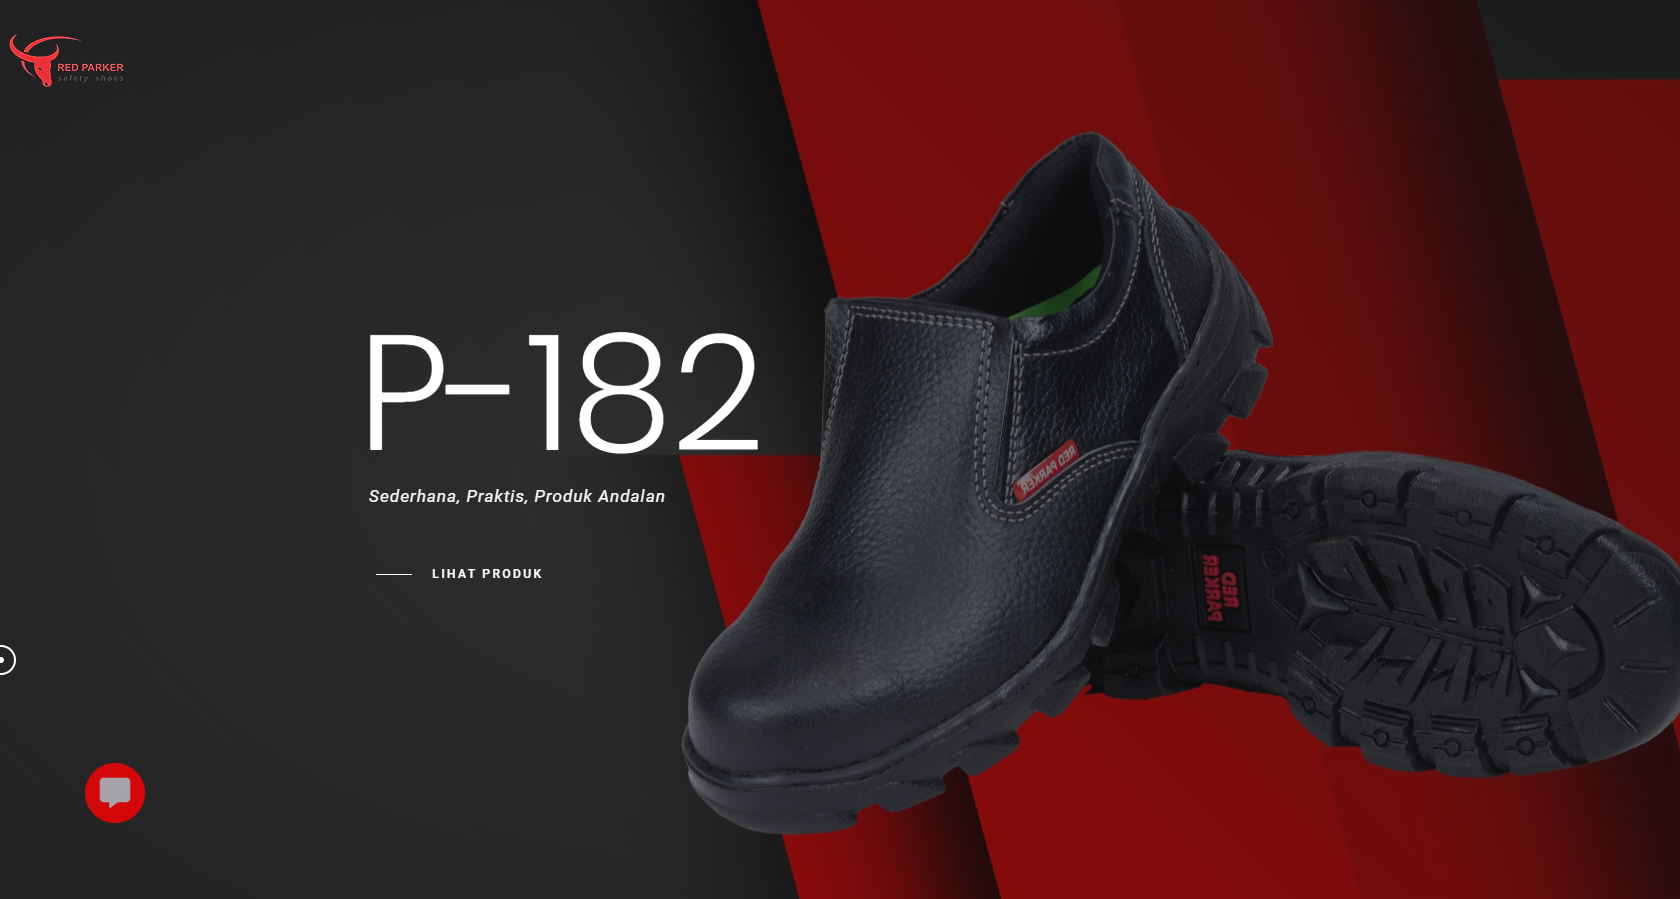 Red Parker Safety Shoes in 2020 Safety shoes, Shoes